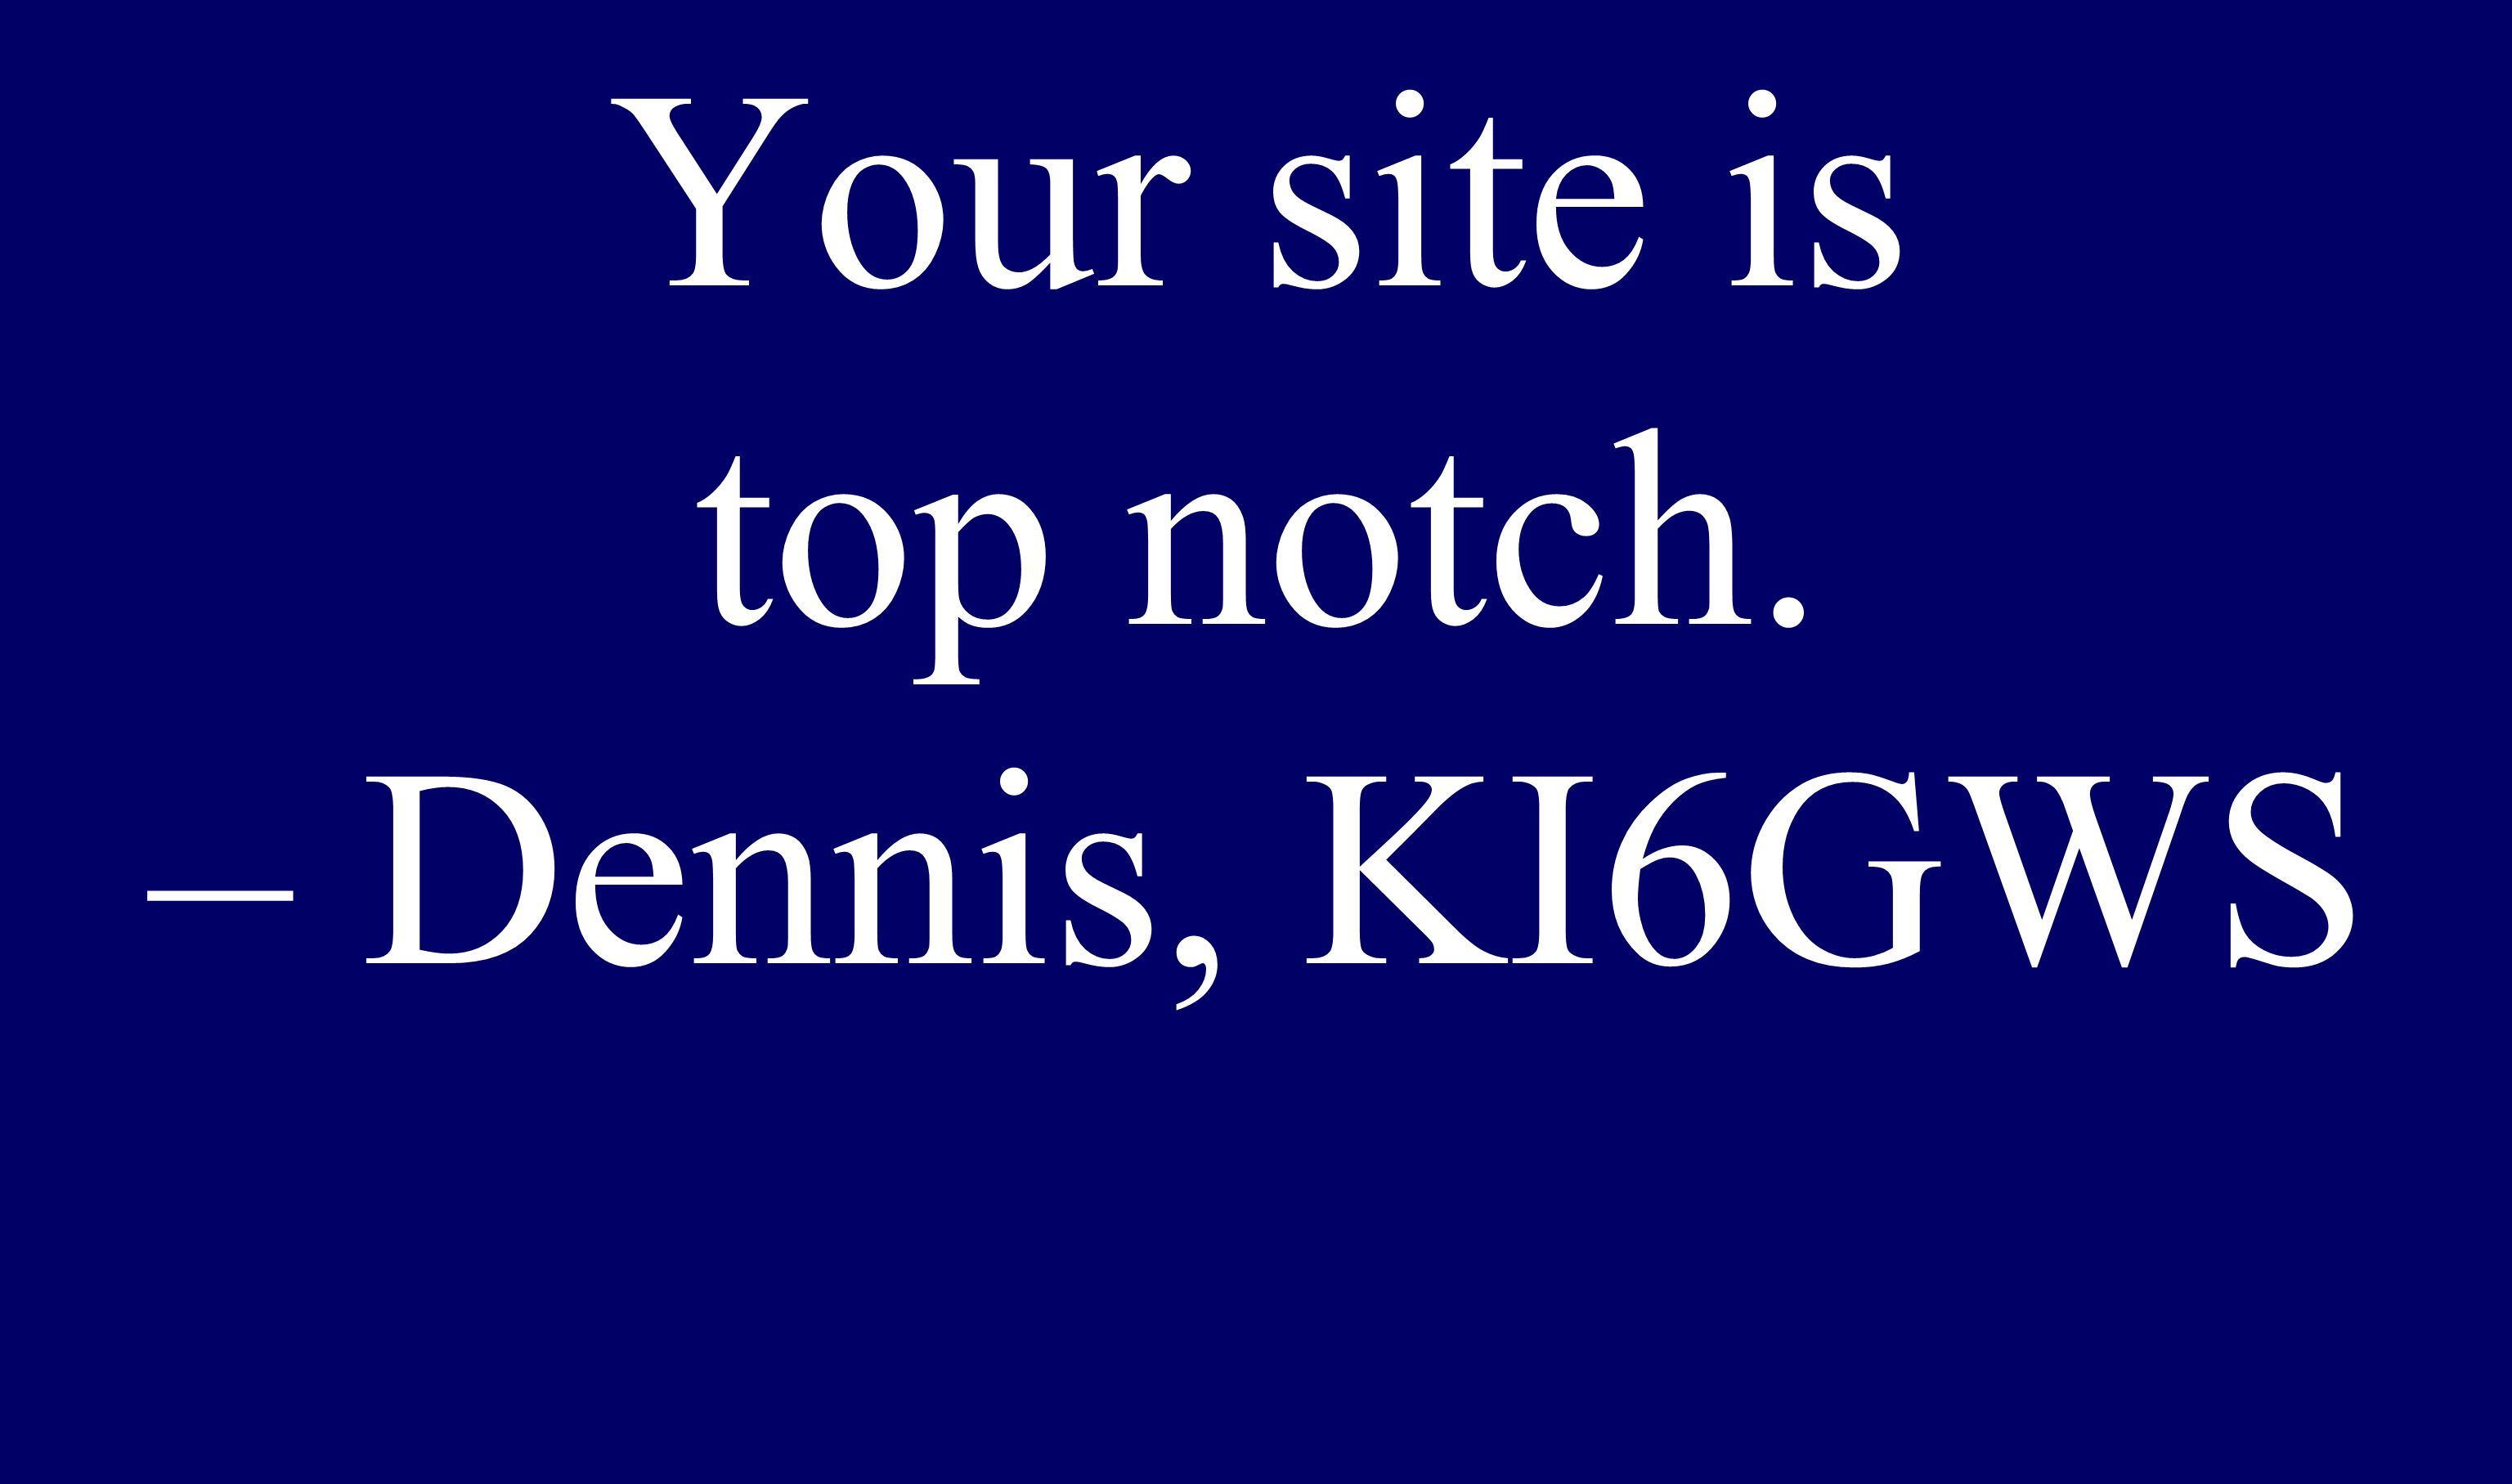 Your site is top notch. – Dennis, KI6GWS